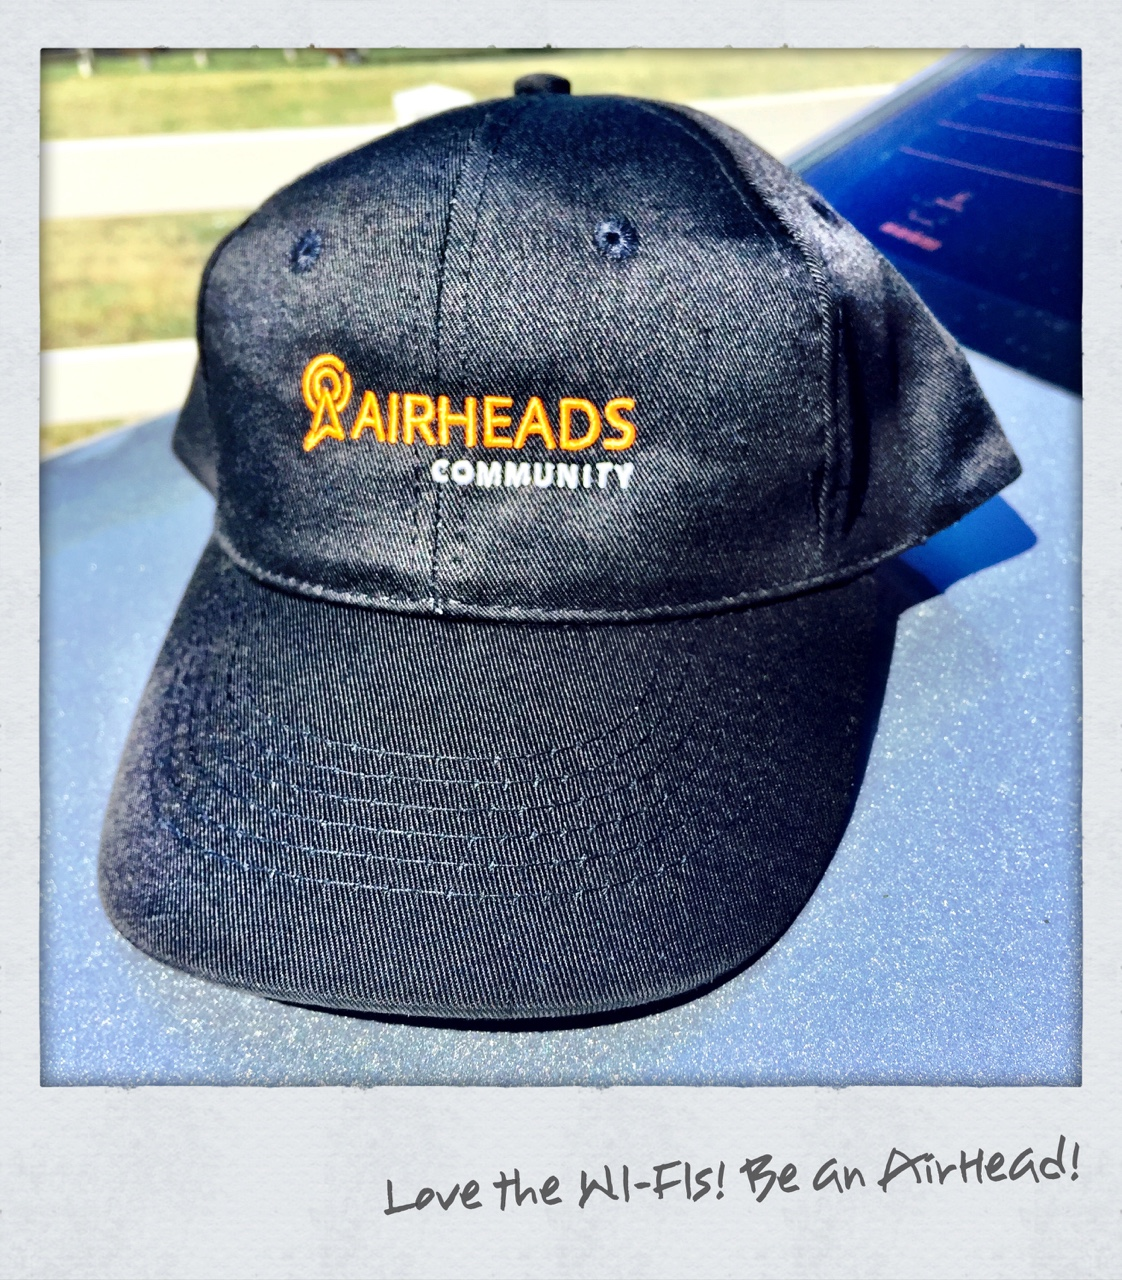 Send me your best #BadFi pics and the winner gets this lovely fashion accessory. I'll even pay for shipping!   SUBMIT  you photo now!       Become part of the Airheads Community↗︎          ♒︎ ENDS FRIDAY, AUGUST 7TH♒︎